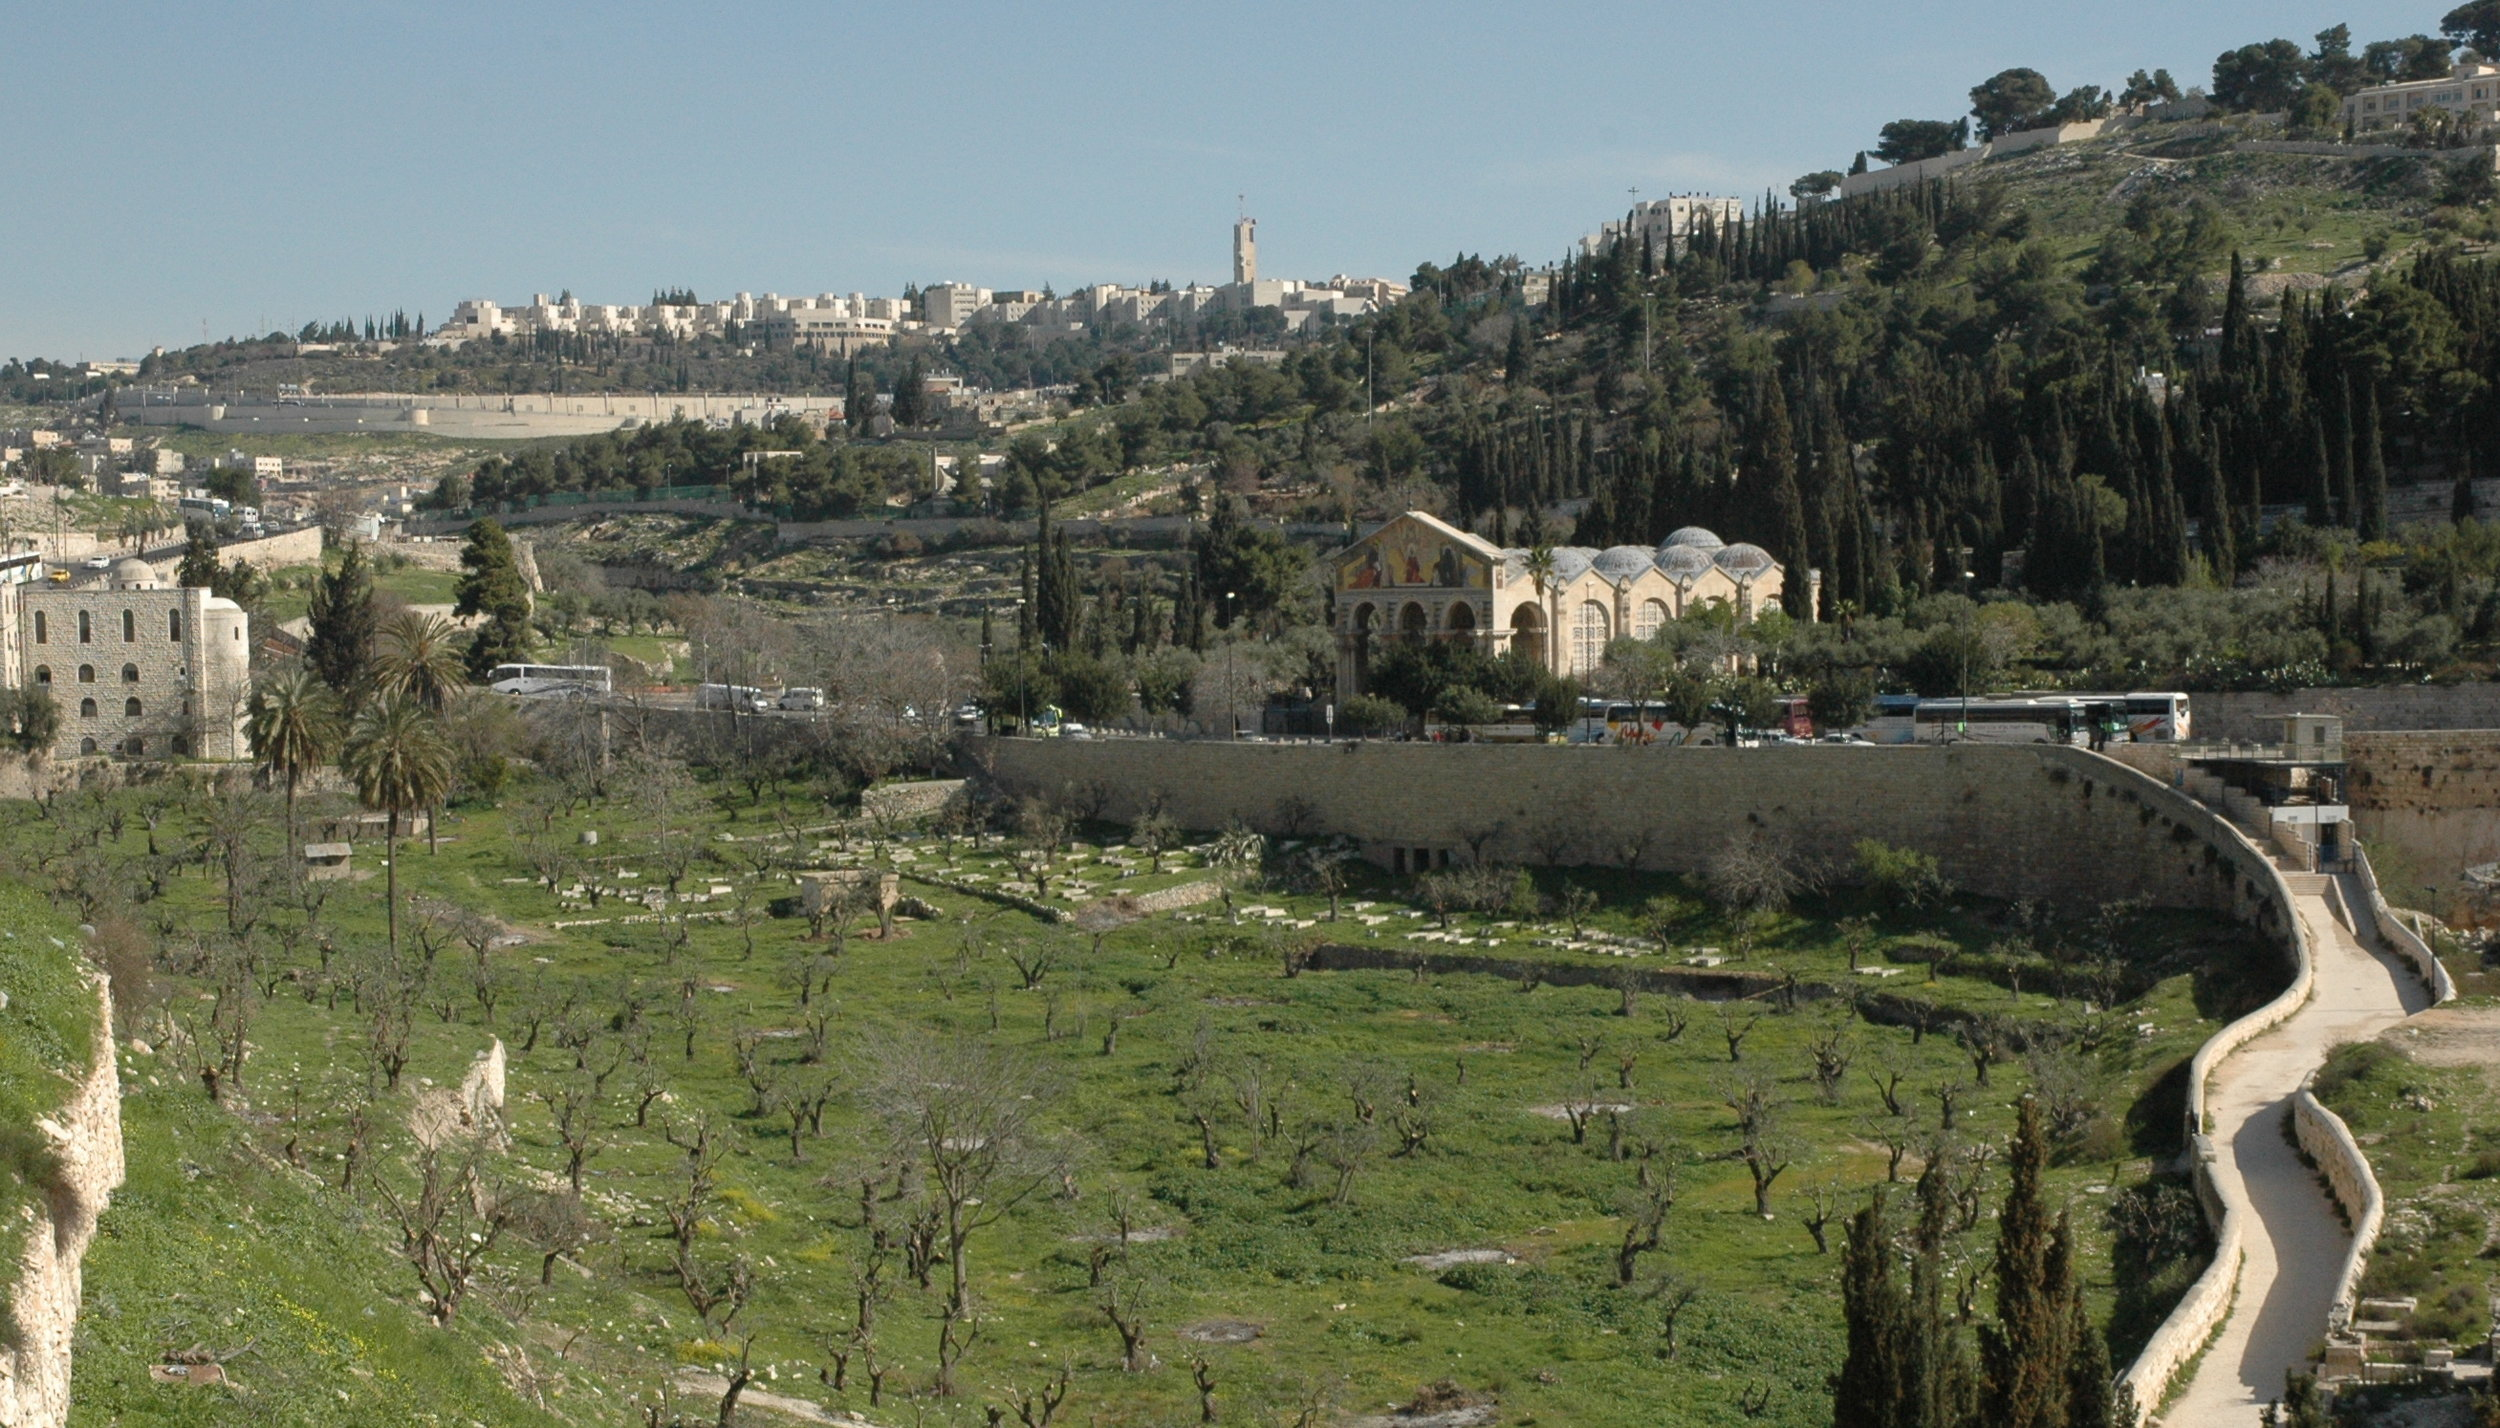 The physical context of the Church of All Nations (capped with several grey domes in center-right). The structure sits at the base of the Mt of Olives (right) facing the Kidron Valley (center) and the Old City of Jerusalem (off screen, left). Image by Mark Ziese.